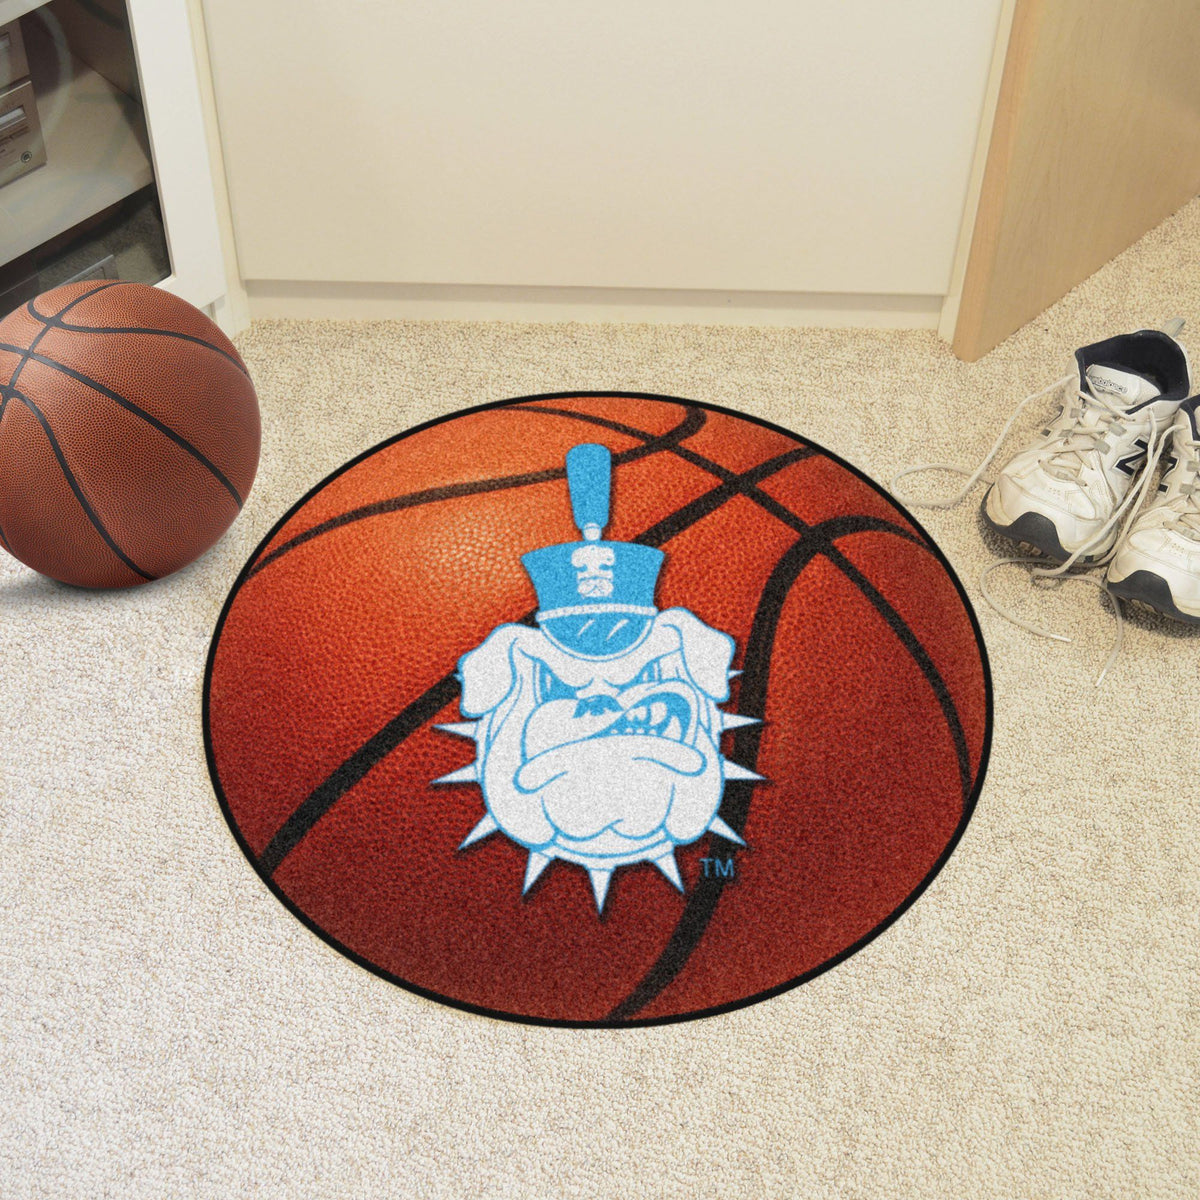 Collegiate - Basketball Mat: T - Z Collegiate Mats, Rectangular Mats, Basketball Mat, Collegiate, Home Fan Mats The Citadel